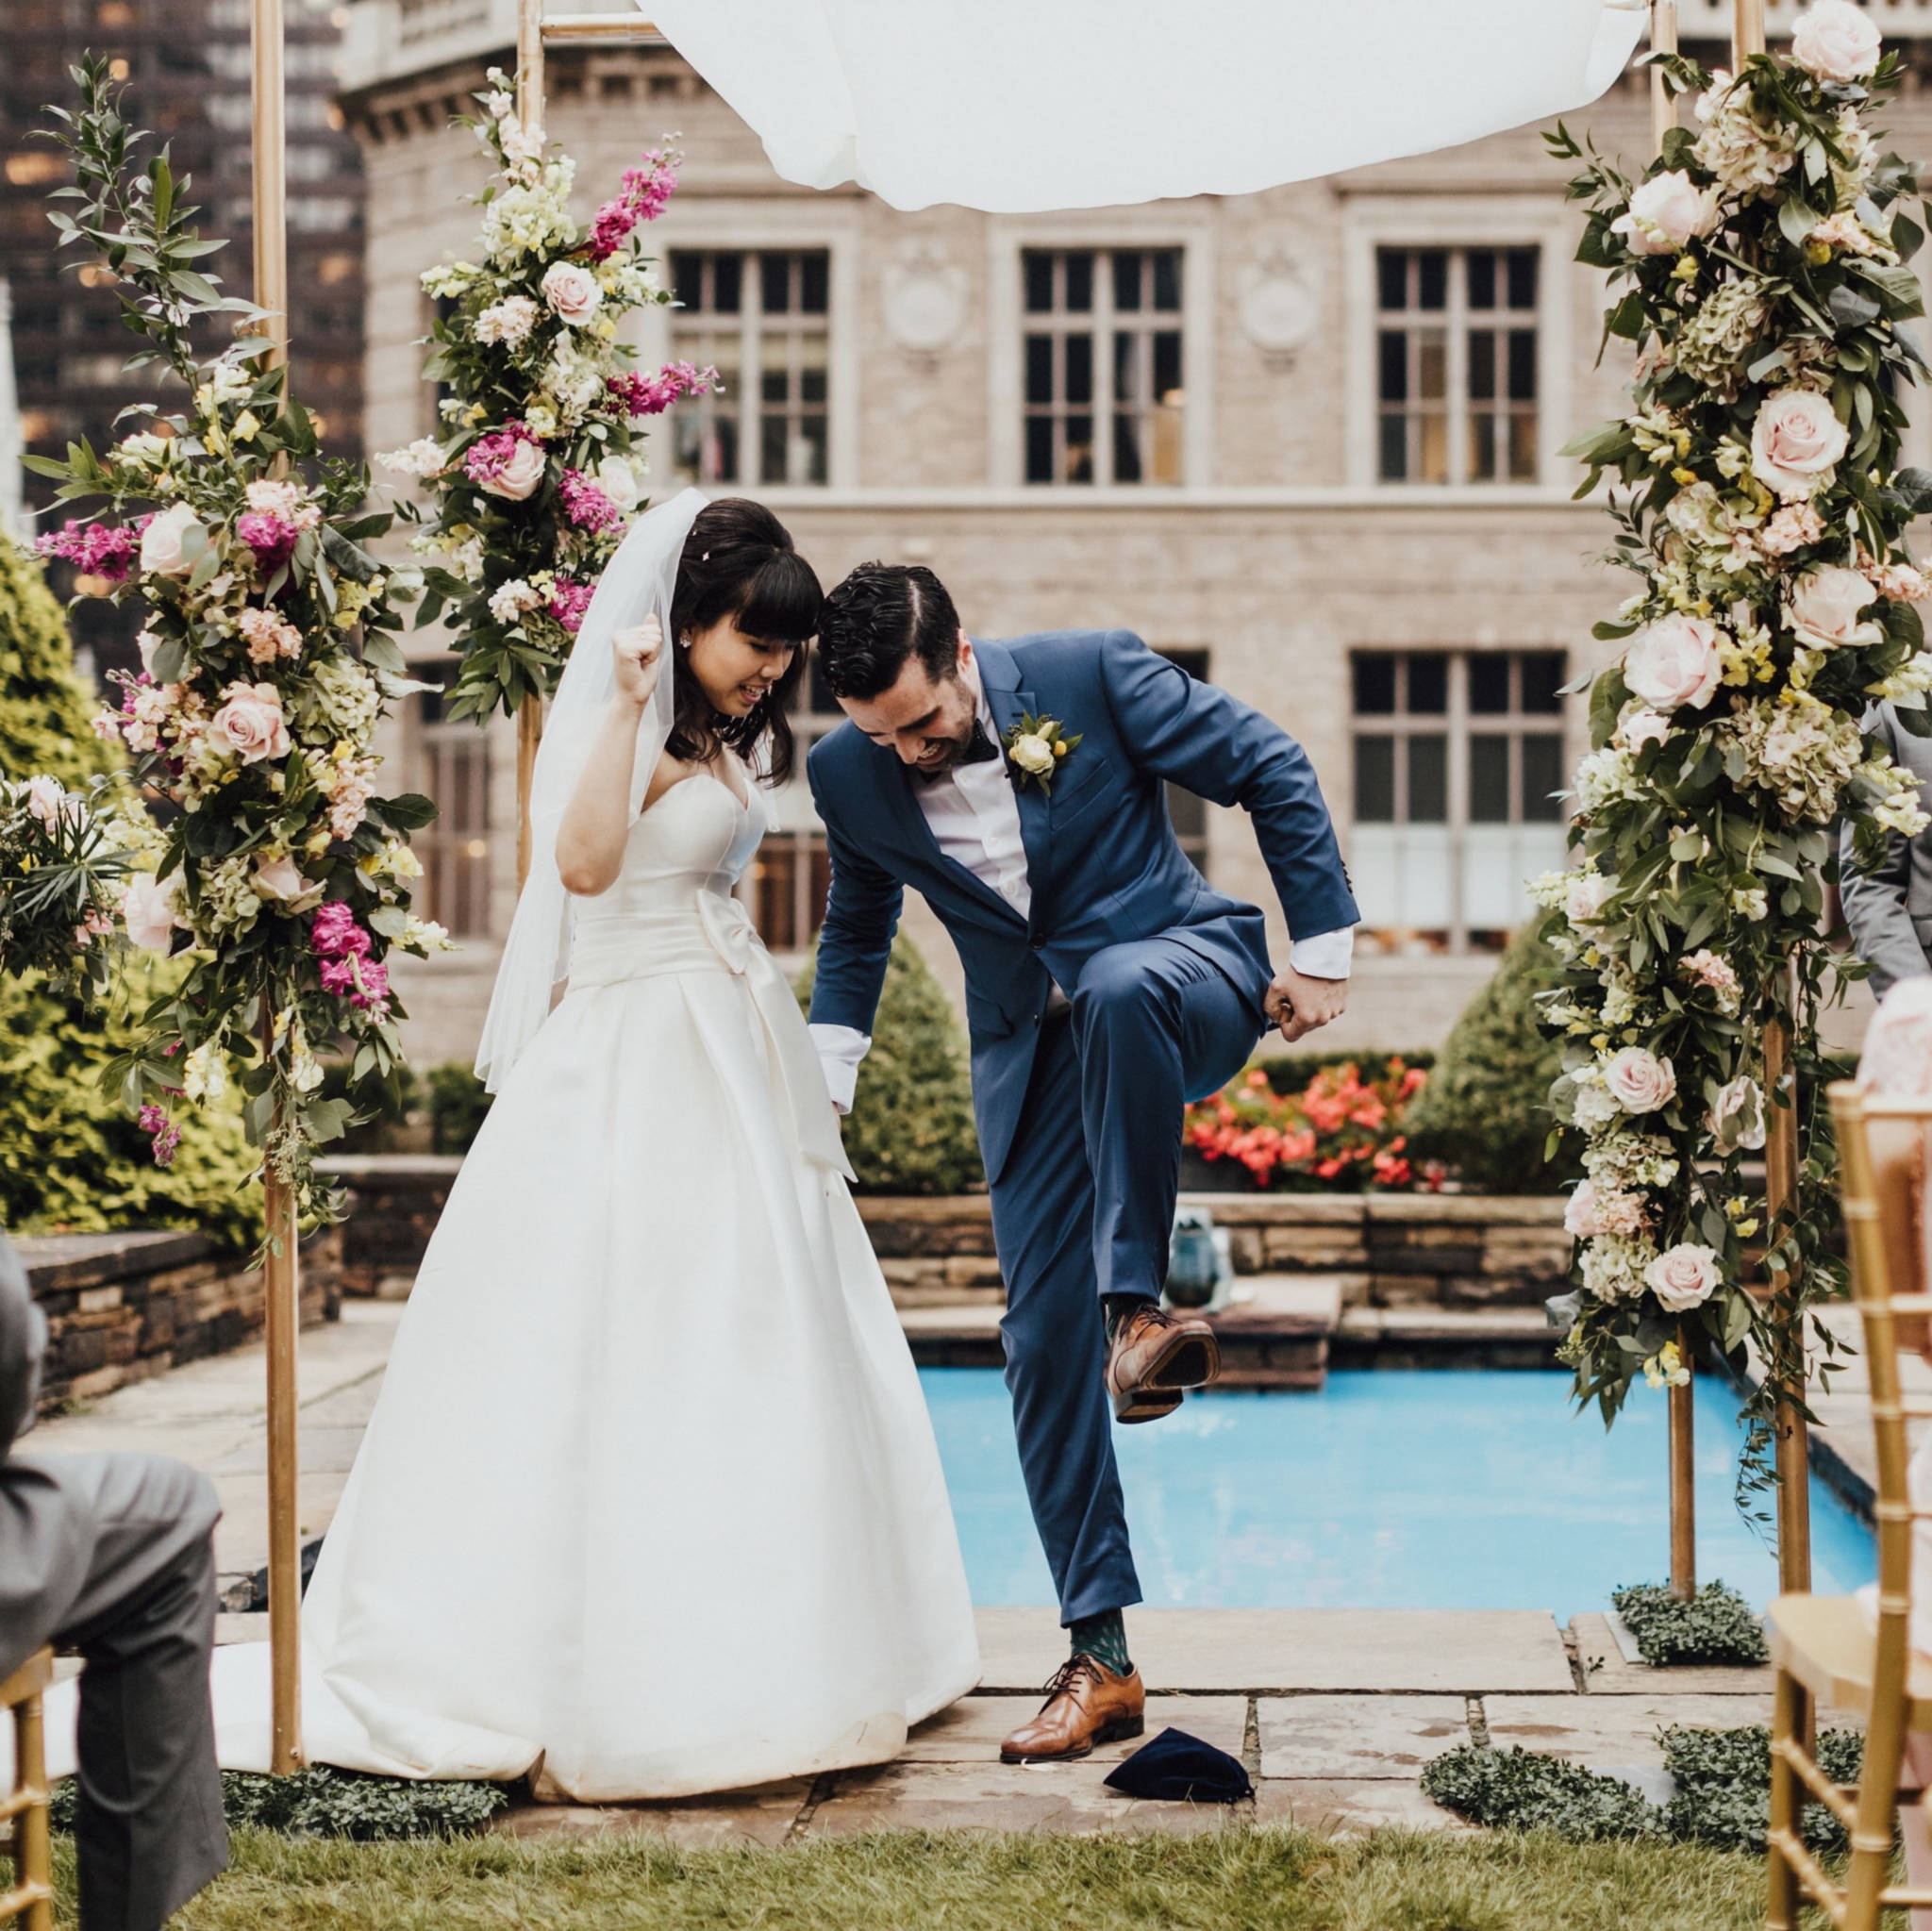 Wedding Coordinating - The Party New York offers full-service planning for the couple who wants to sit back and relax as well as partial planning for clients who want to be more hands-on. All of our packages are completely customized to accommodate the size and complexity of the event.